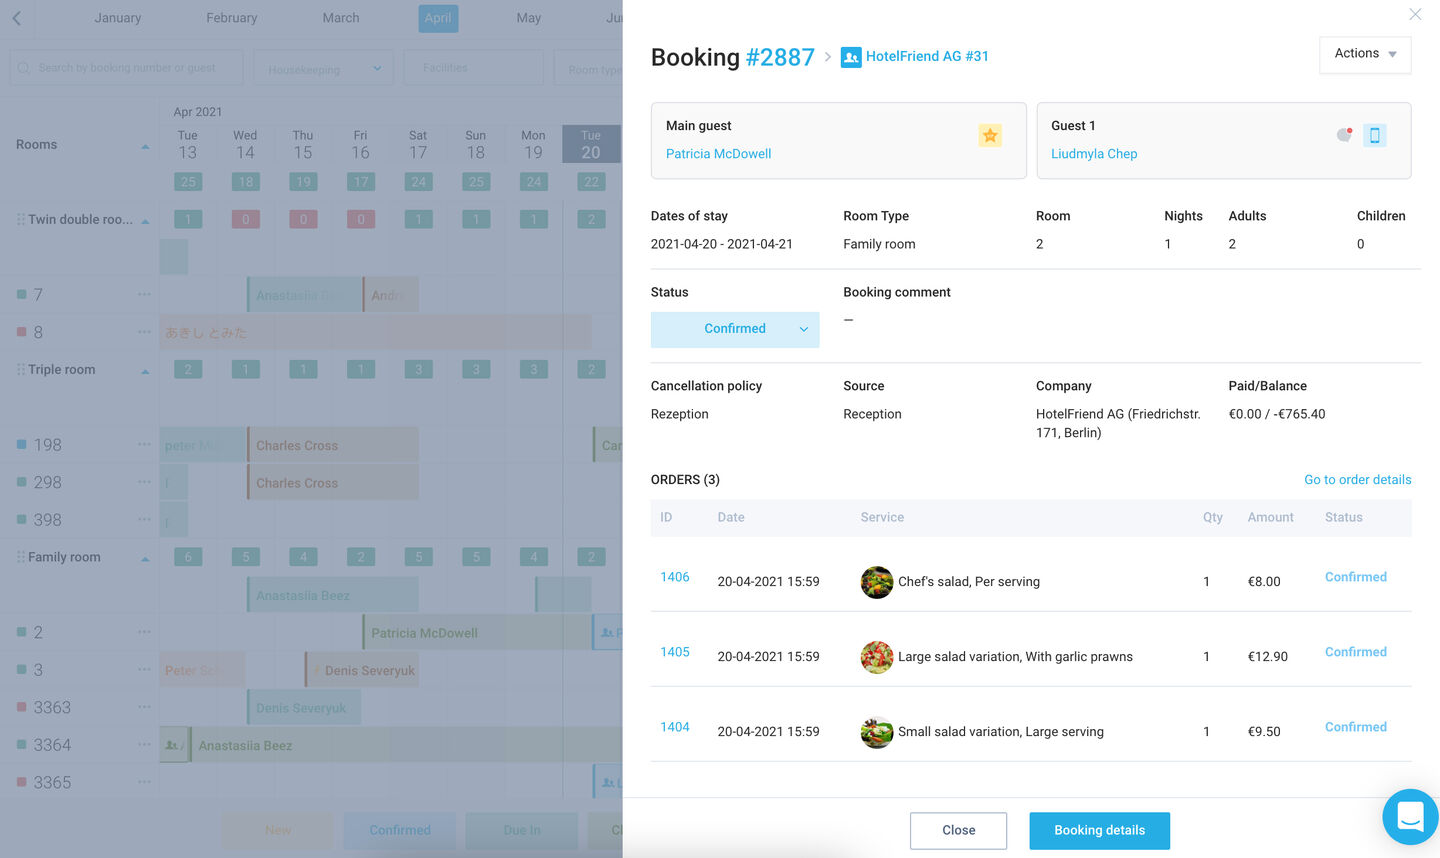 Redesigned Booking details modal